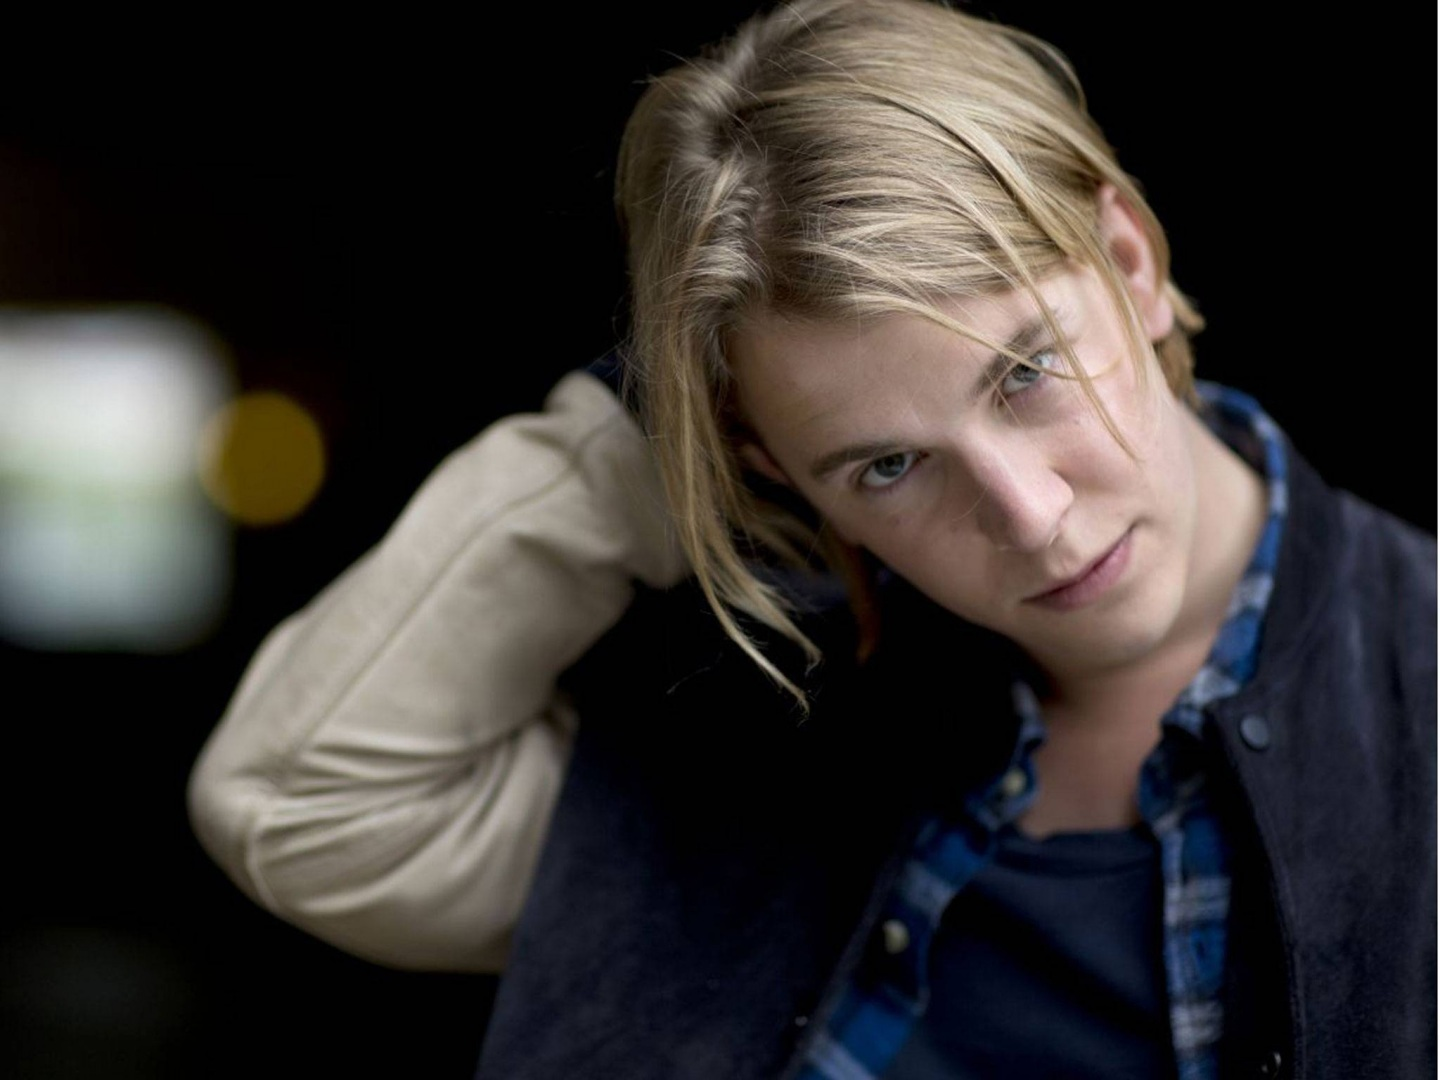 Tom Odell Wallpaper Px Photo Shared By Albie35 Fans Share Images 1440x1080